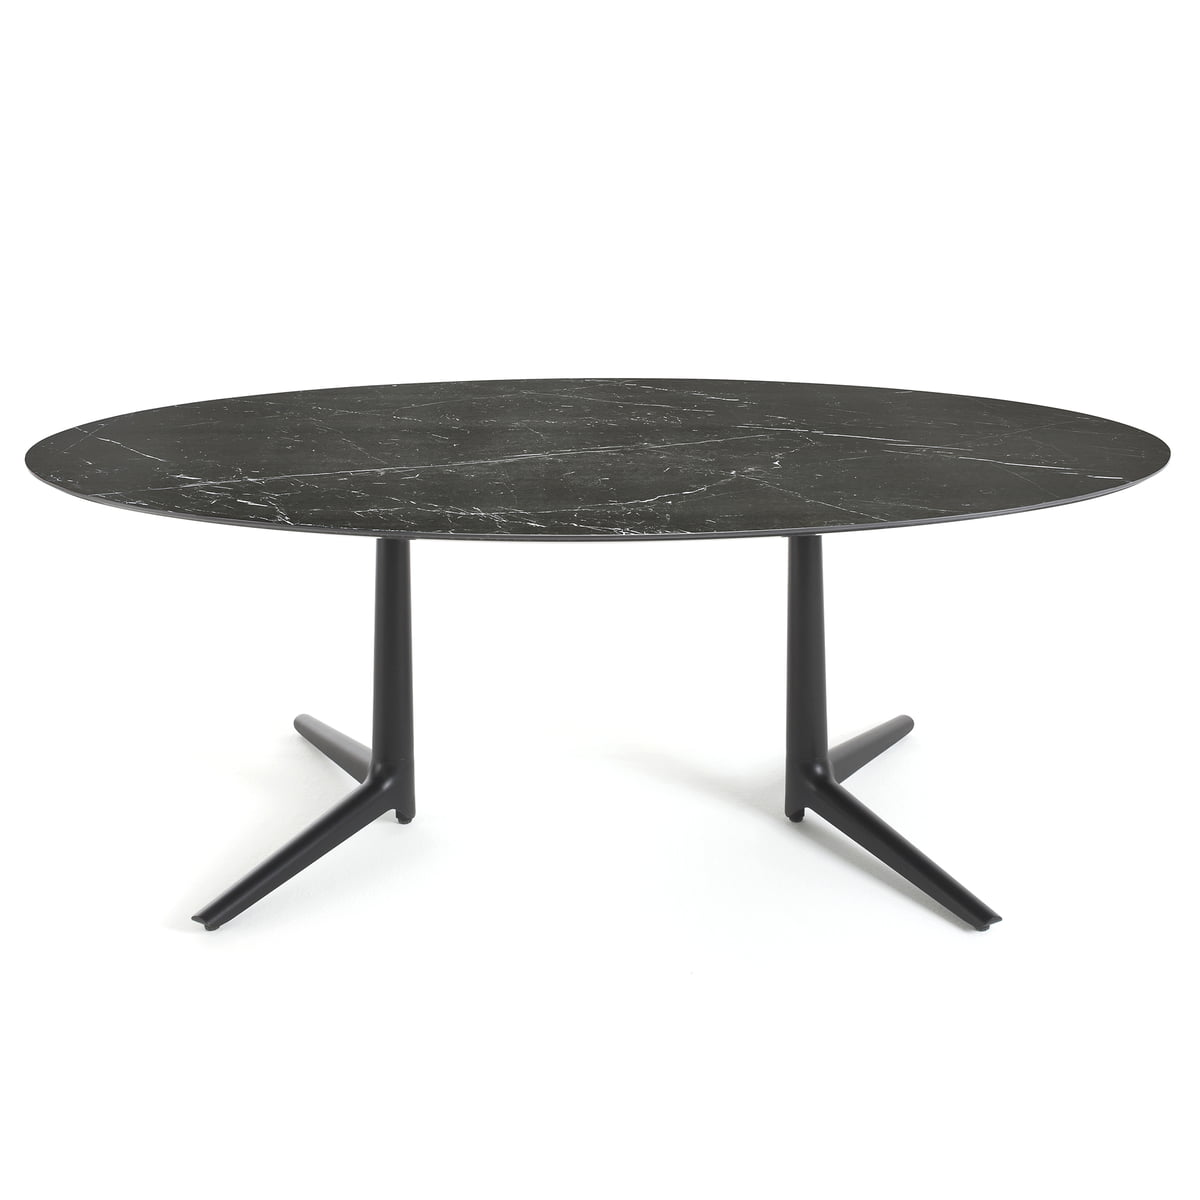 Multiplo dining table by kartell in the shop for Table exterieur kartell